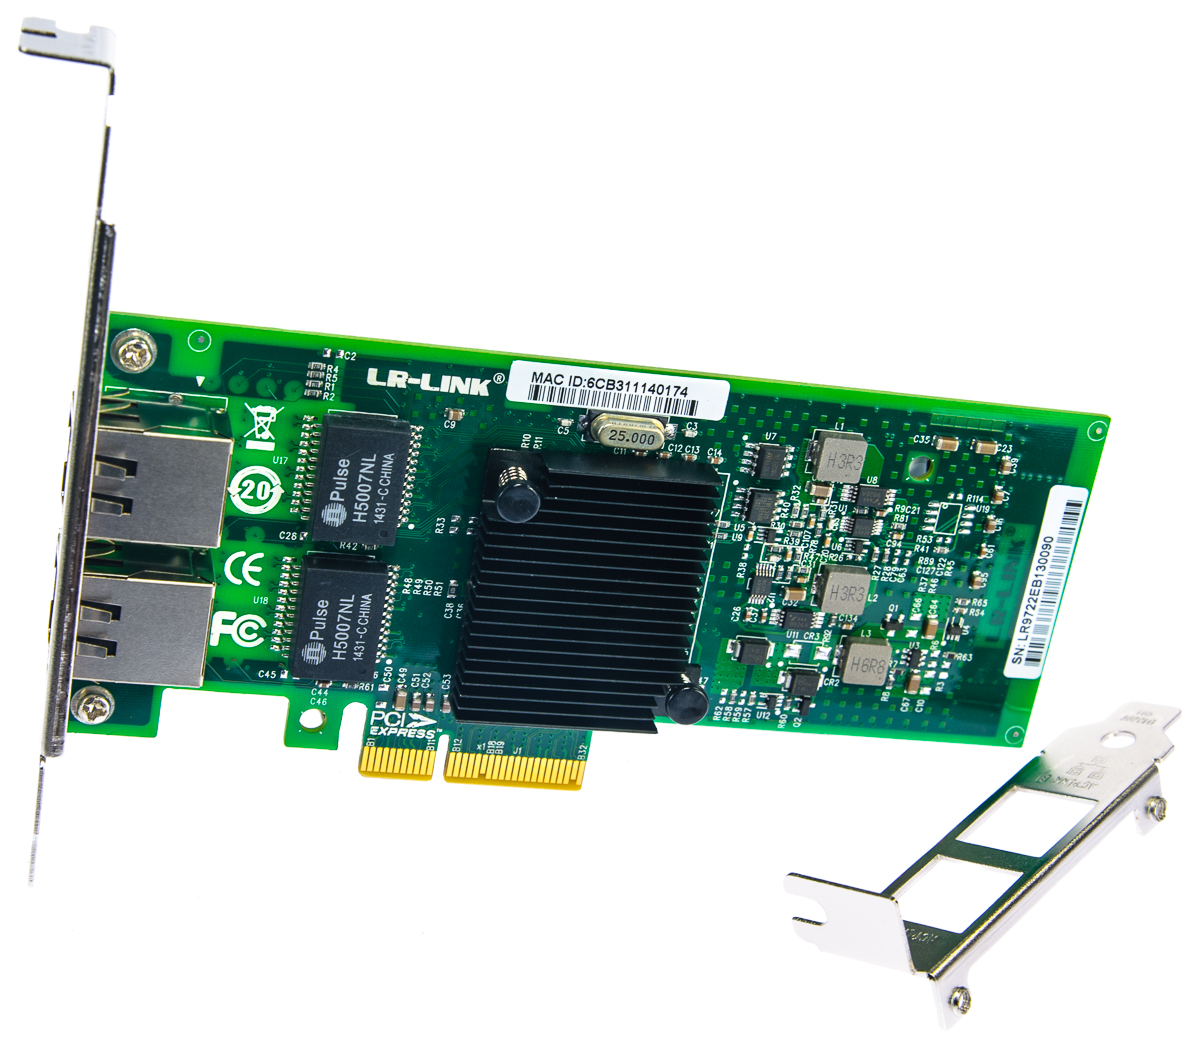 LR-Link LREC9722PT PCIe x4 Dual Port GbE Adapter